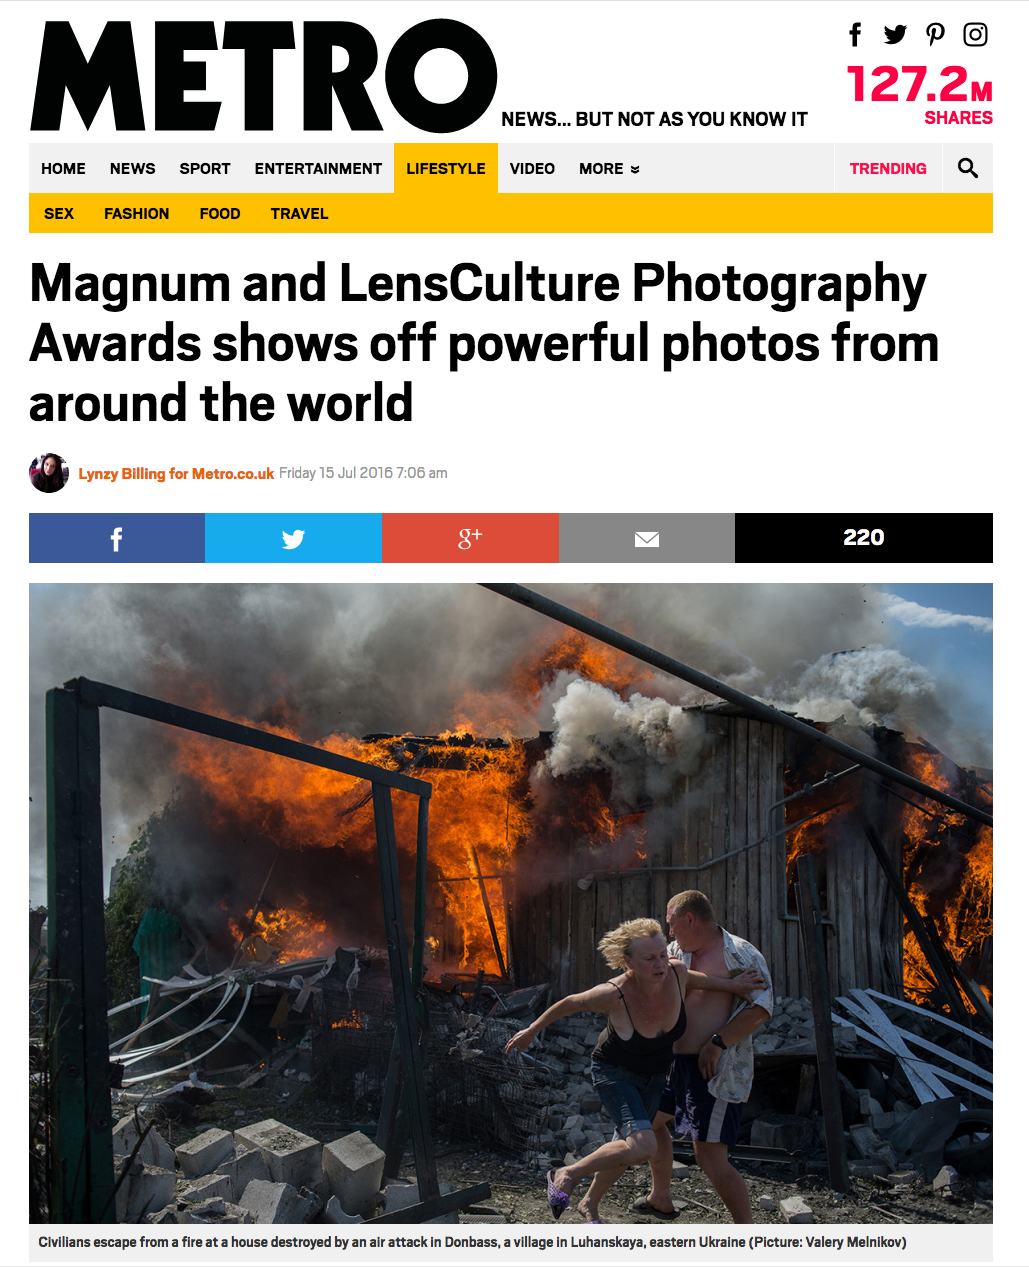 Metro News Featured the Winners of the Magnum Awards 2016 -